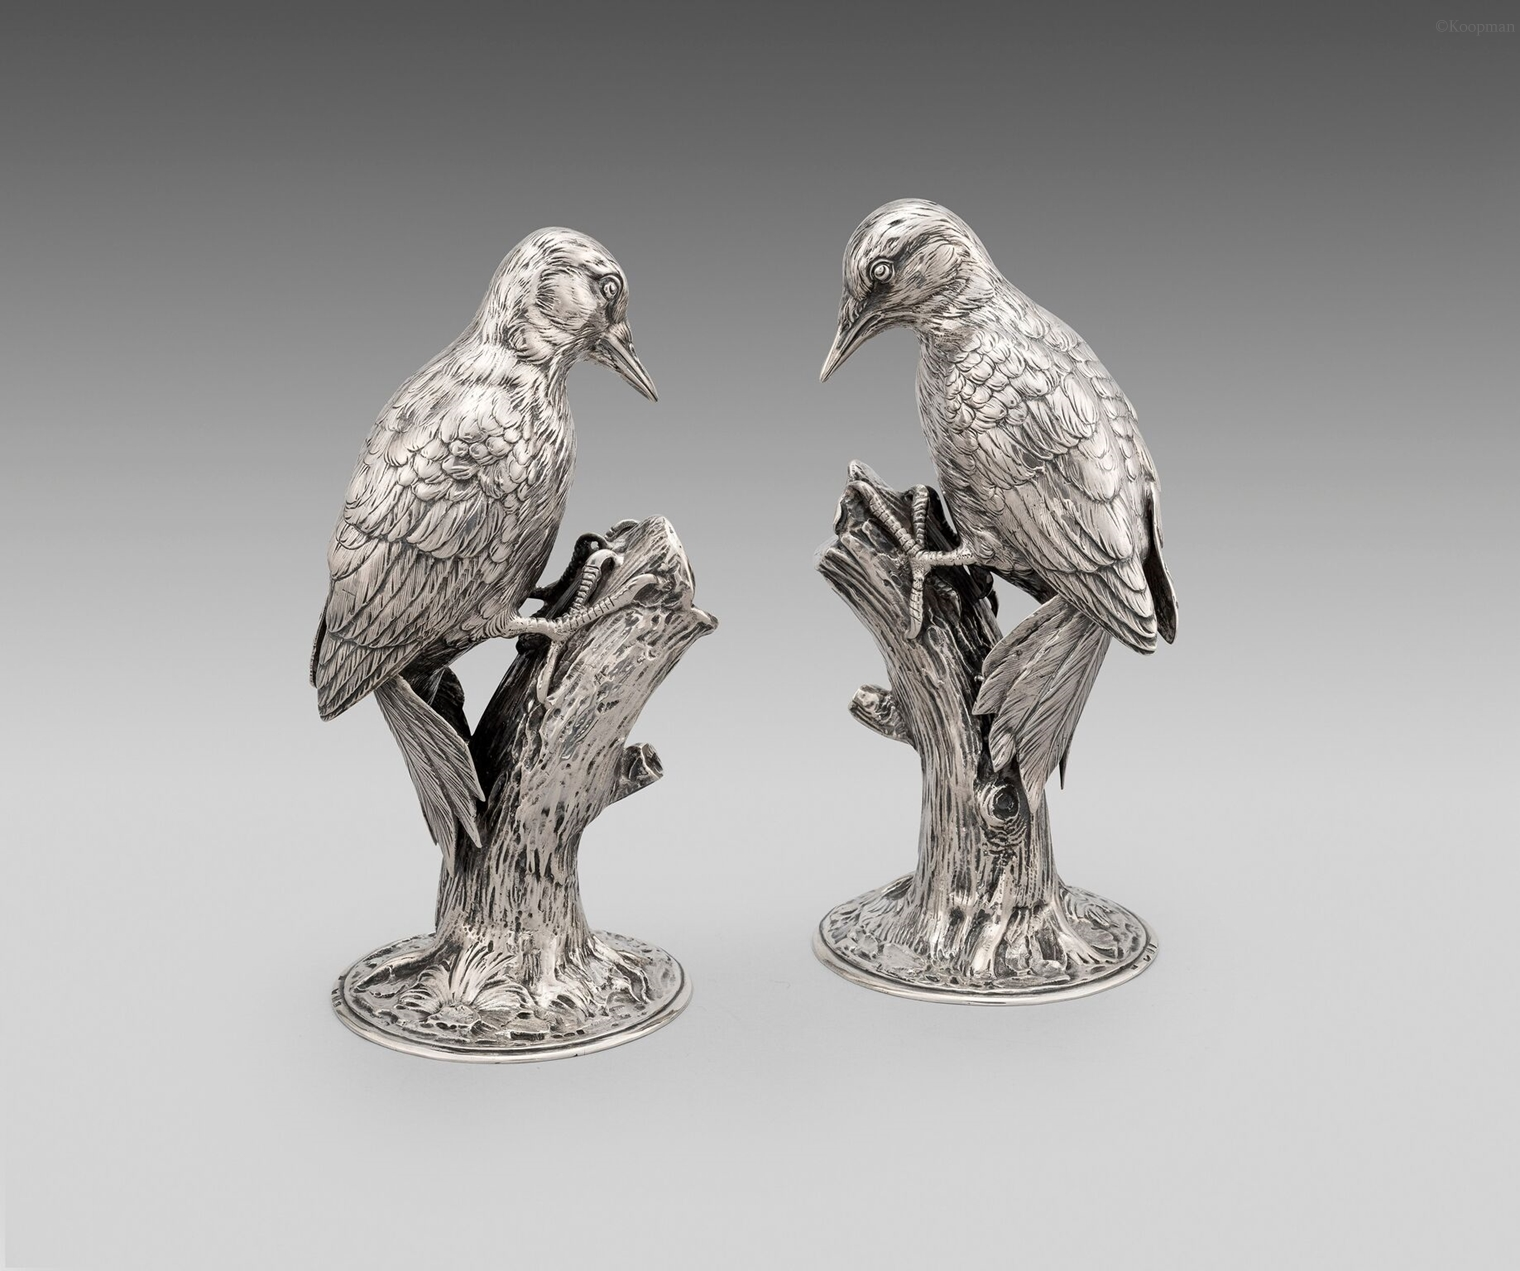 A Pair of Wood Peckers